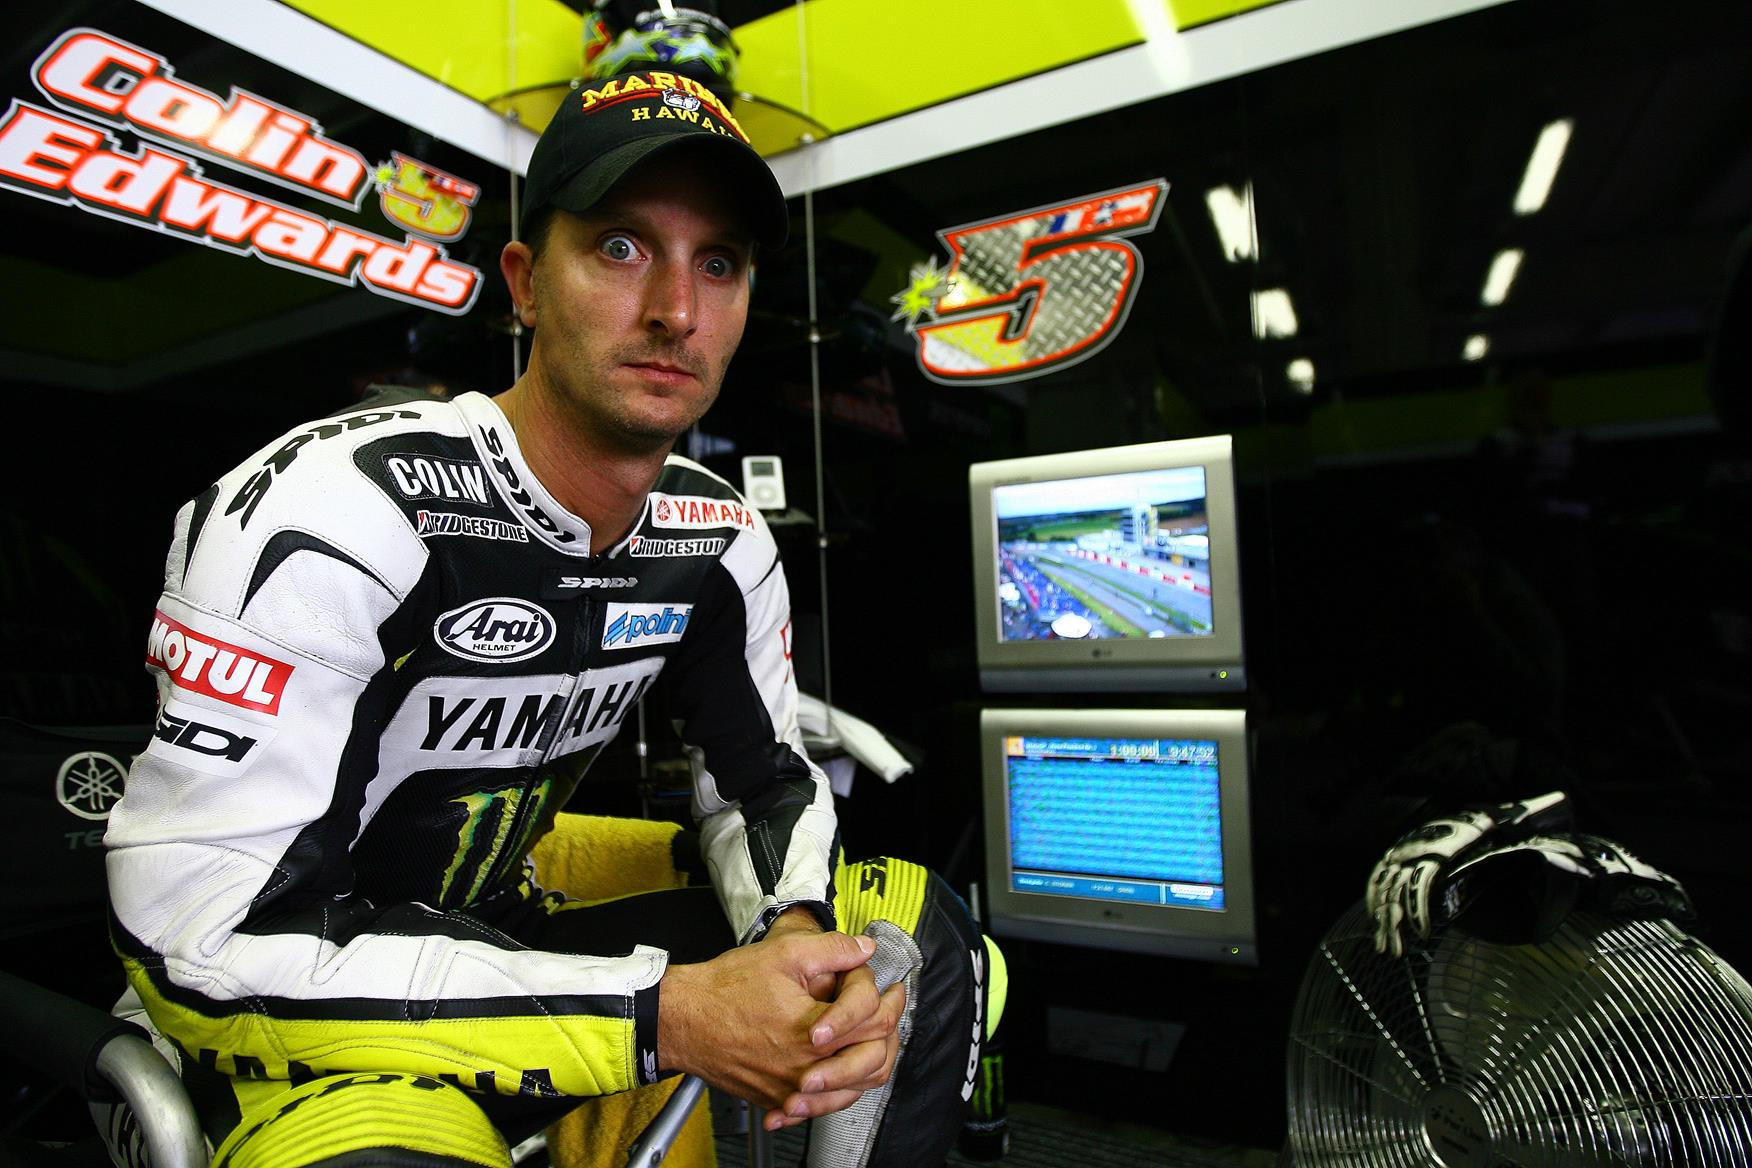 4e37987e Colin Edwards launches Day of Champions fan appeal